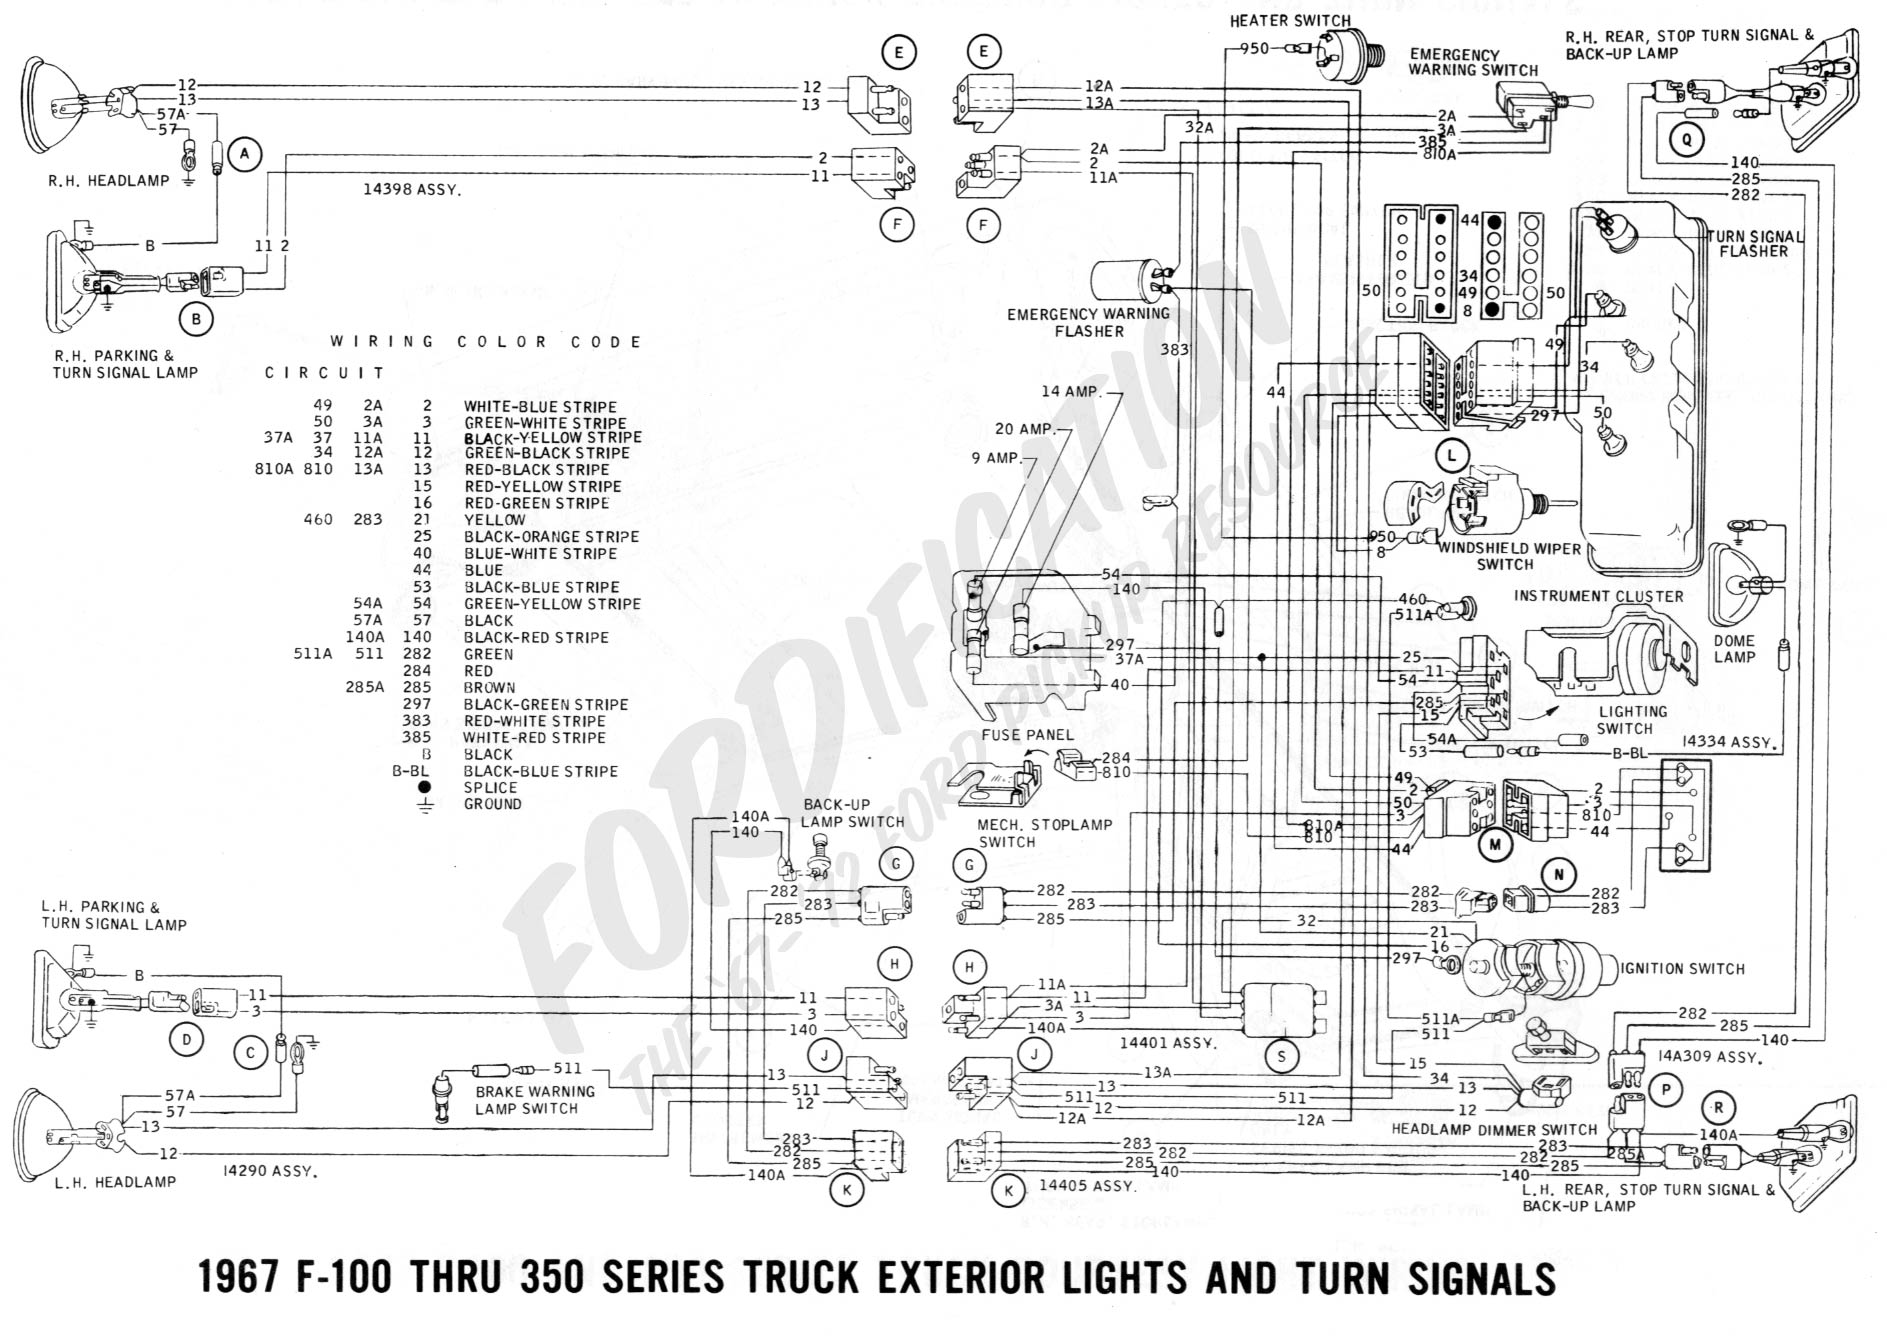 1973 Standard Beetle Wiring Diagram Circuit And Hub Volkswagen Ford Truck Technical Drawings Schematics Section H 70 Vw 1967 Engine